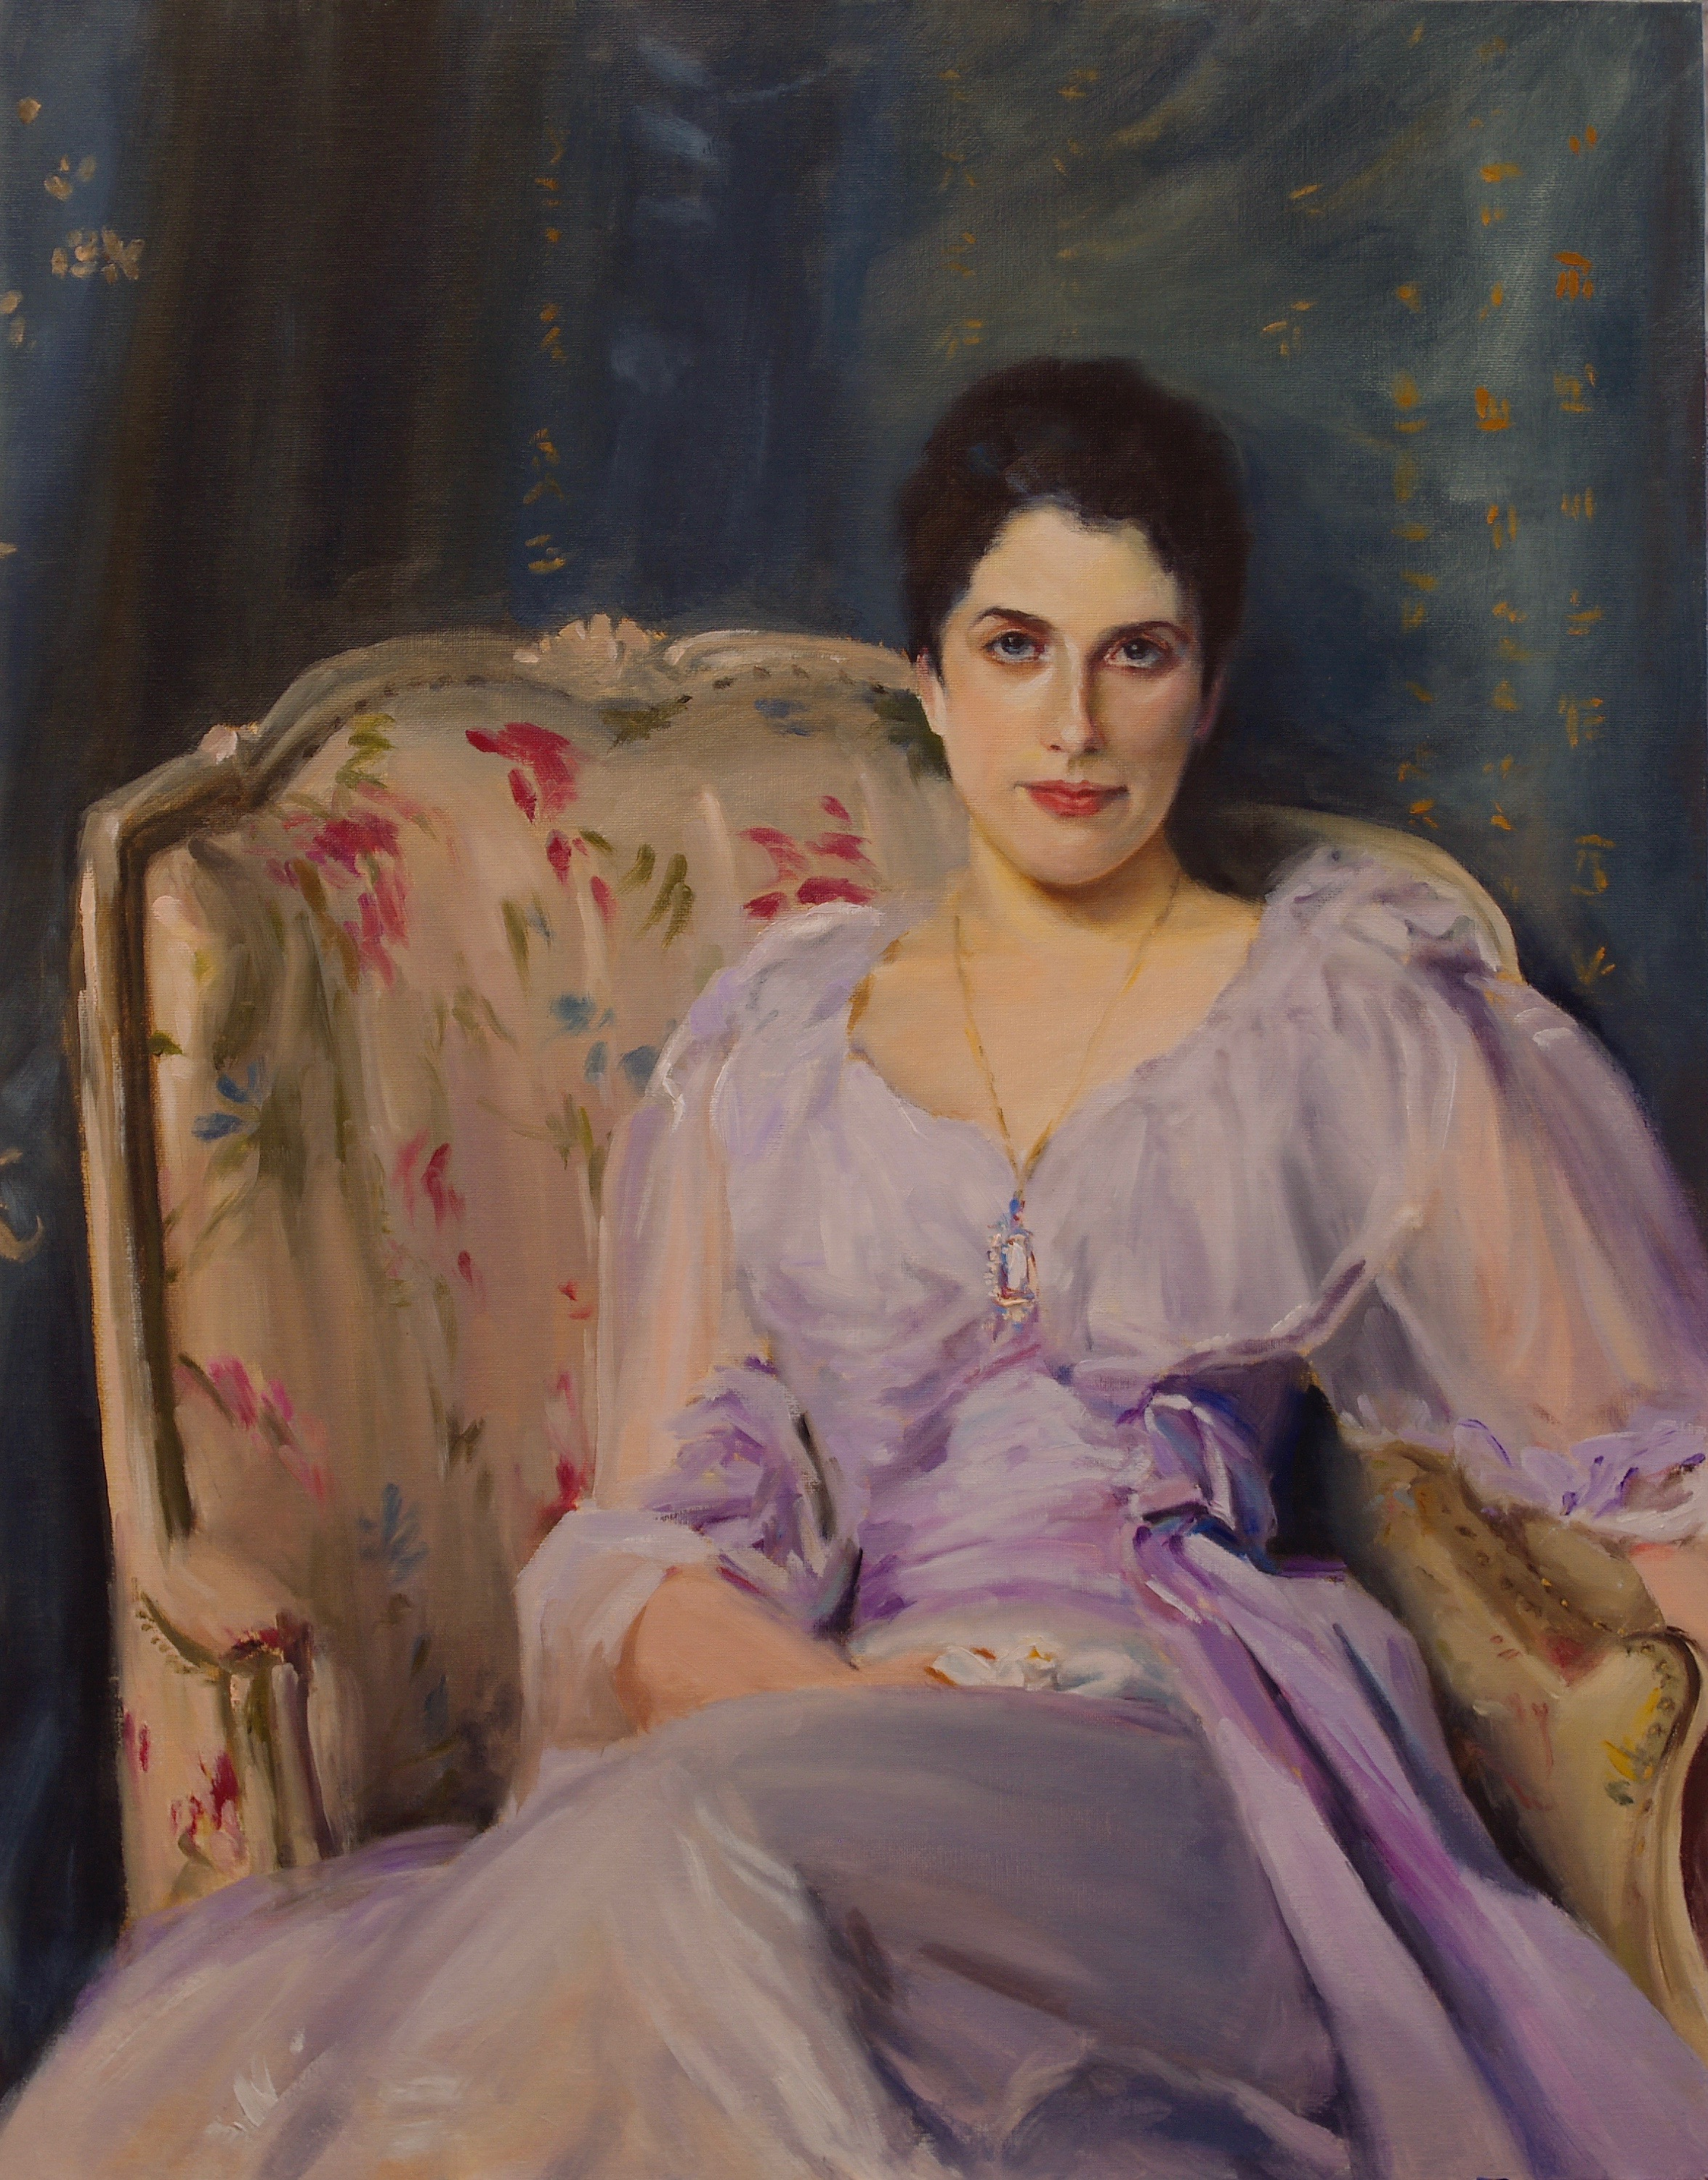 Reproduction of John Singer Sargent's Lady Agnew